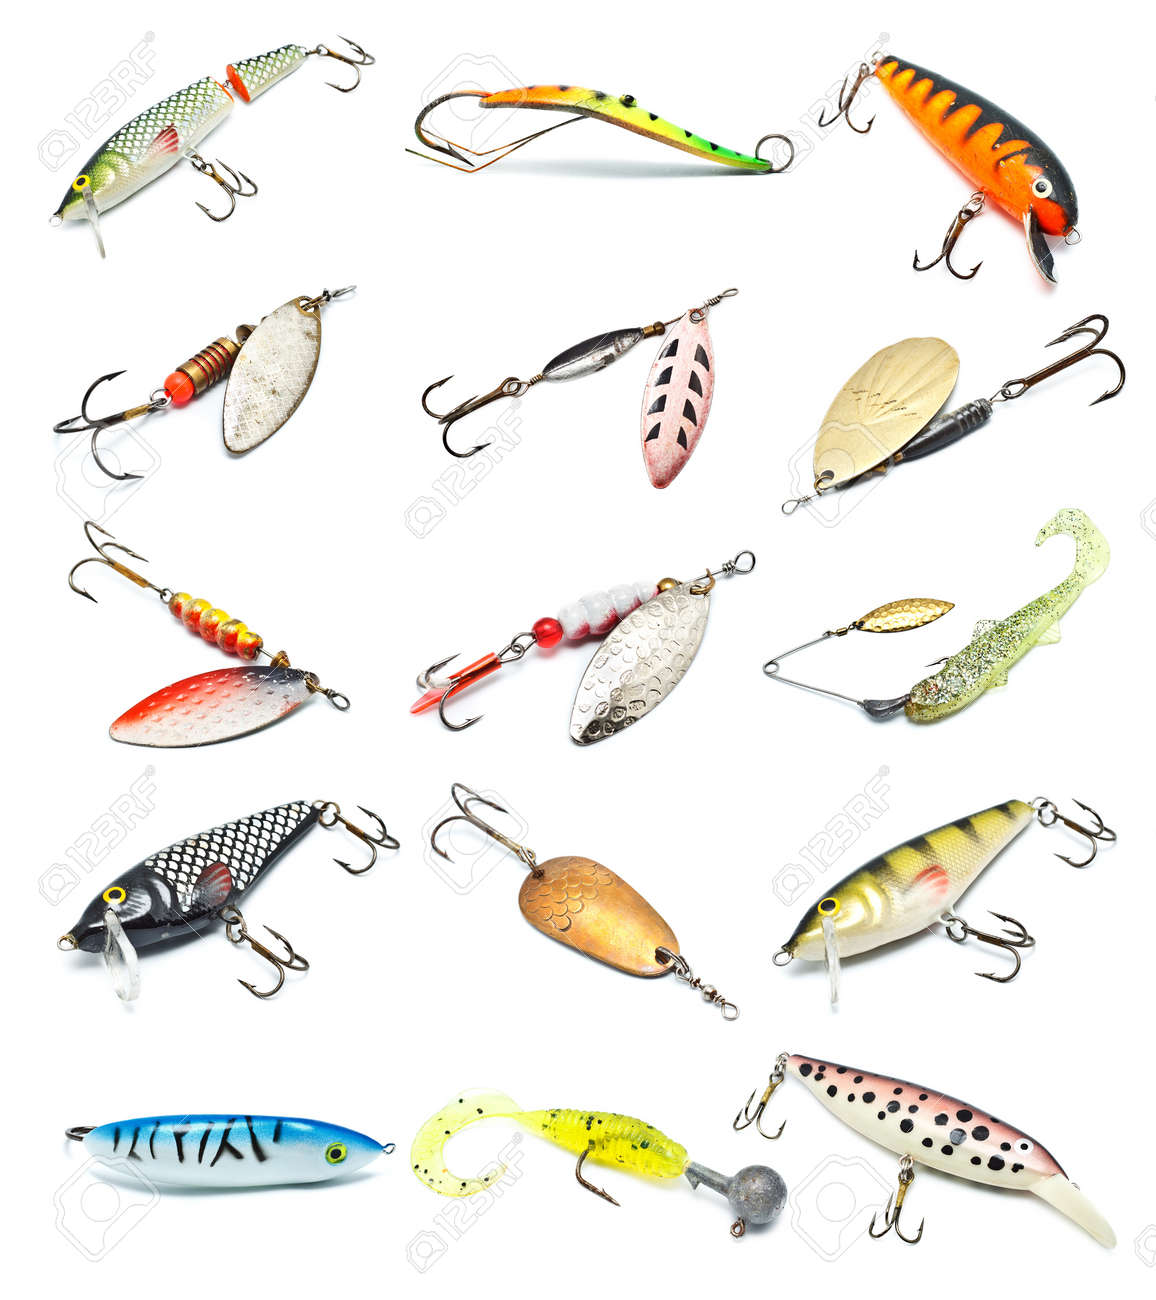 different fishing baits isolated on white background stock photo, Hard Baits